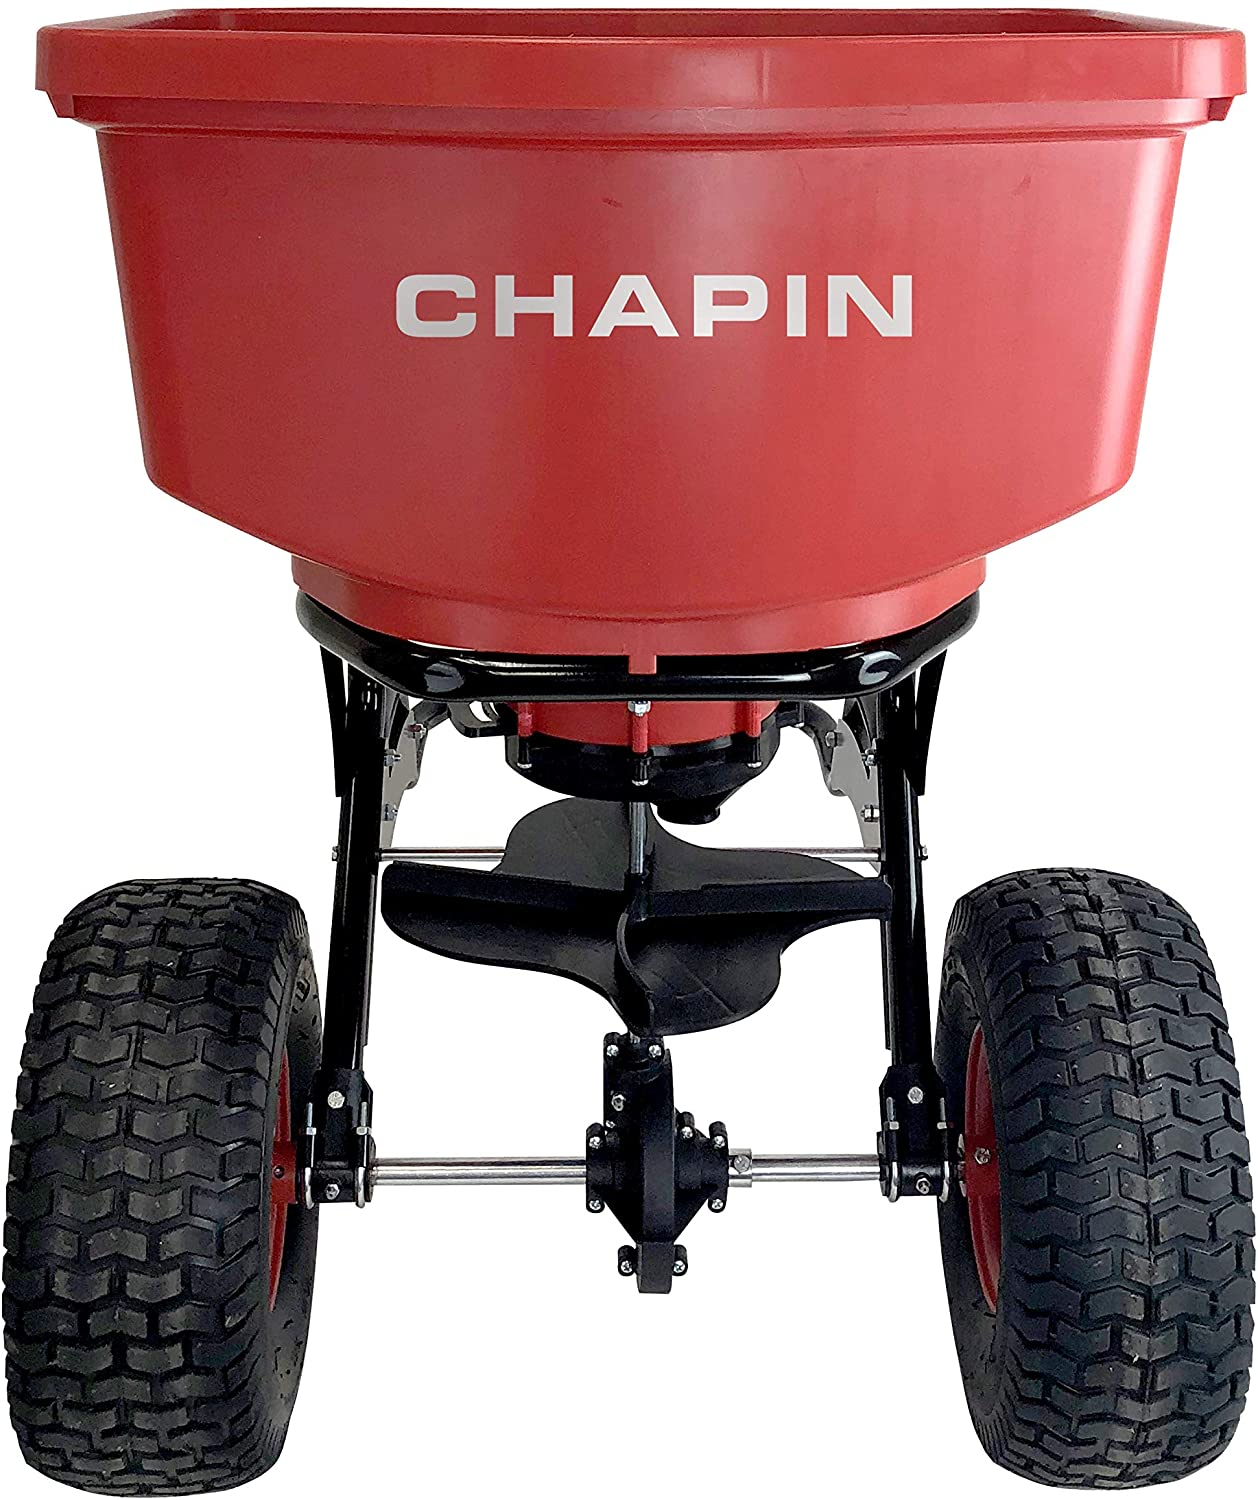 Chapin International Chapin 8620B 150 Pound Tow Behind Spreader